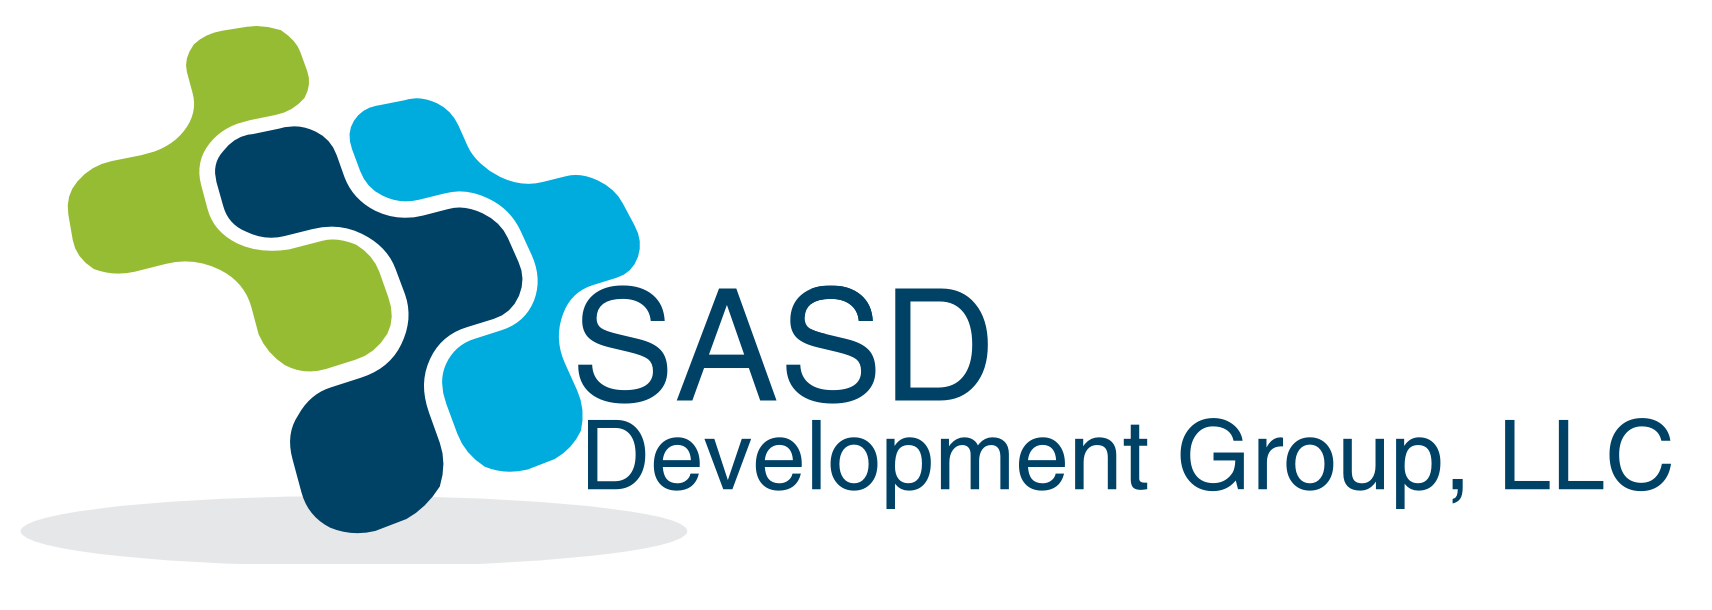 SASD Development Group, LLC